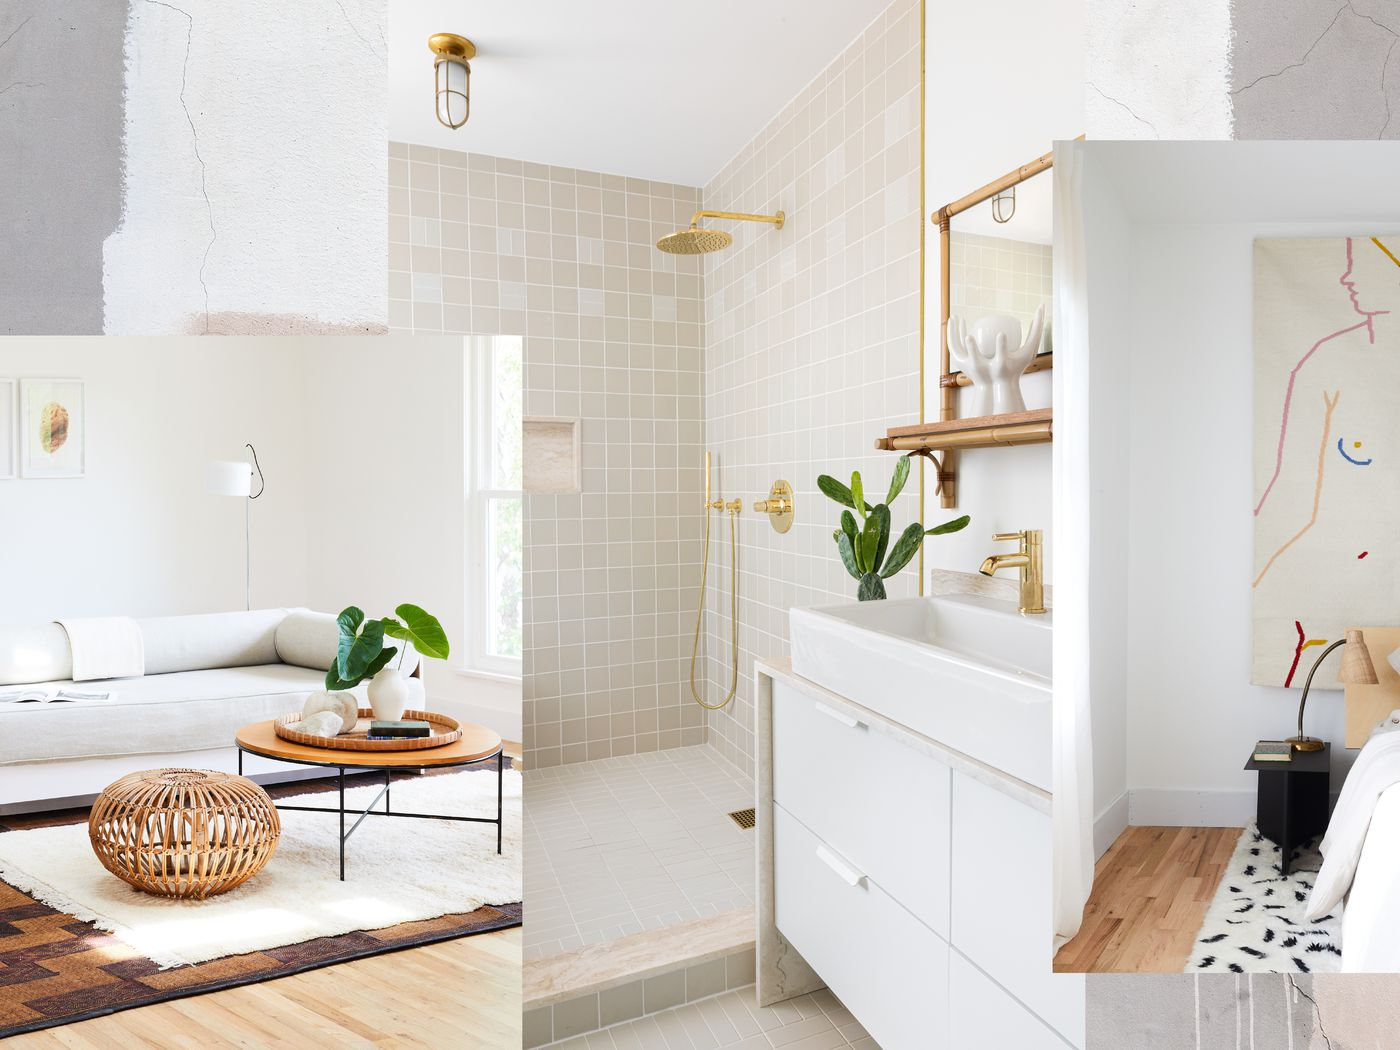 How to create calming, relaxing interiors - Curbed